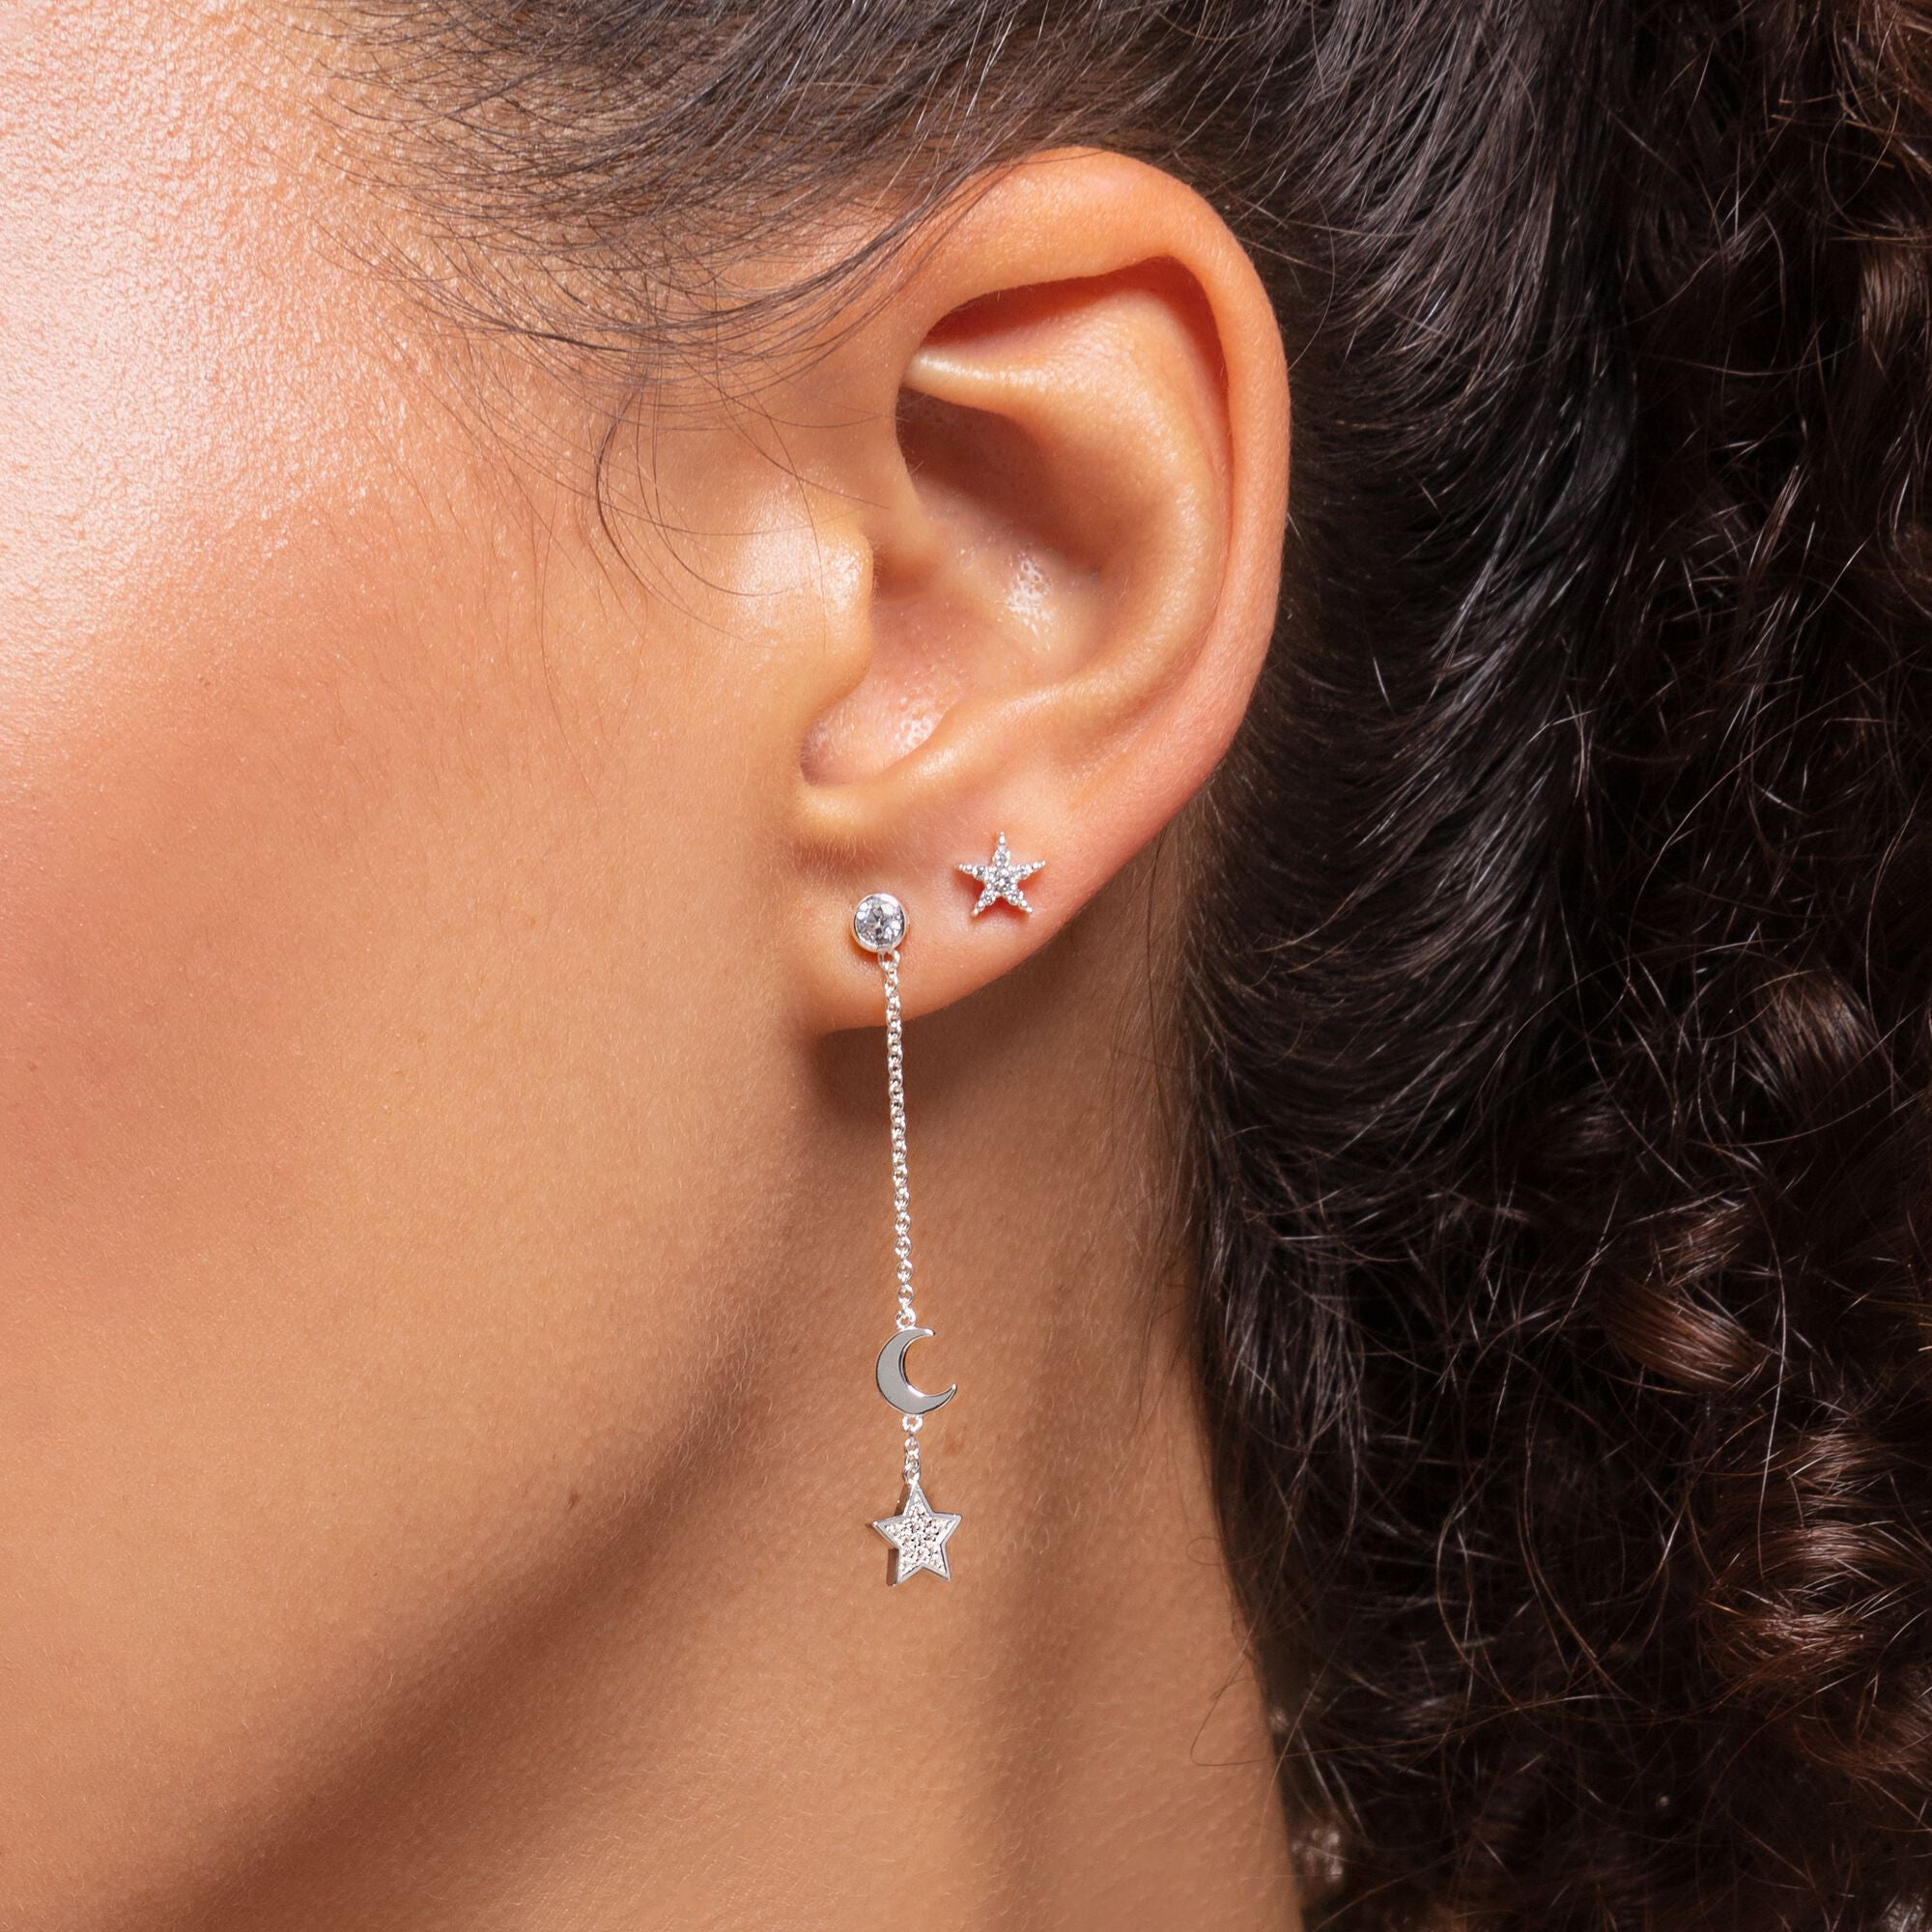 Thomas Sabo, Sterling Silver, Cubic Zirconia, Moon & Star, Dangle, Chain, Single Stud Earring, Push backing, Ottawa